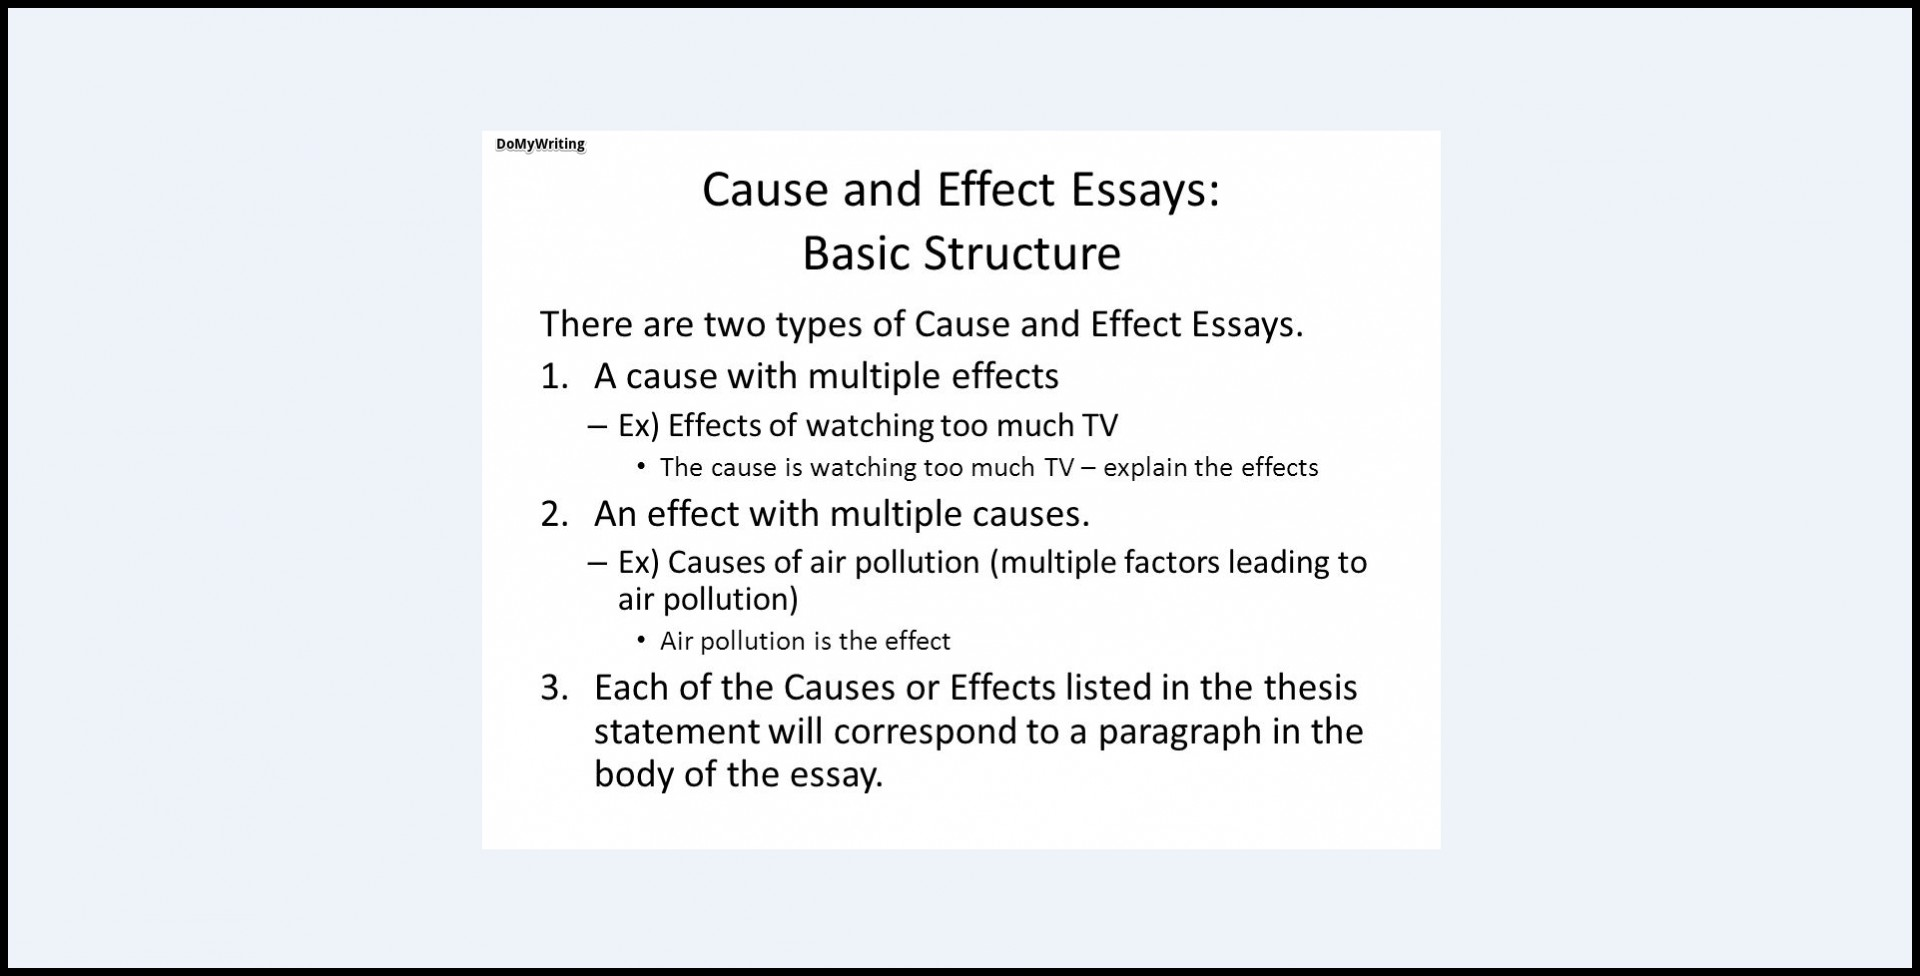 013 Cause And Effect Essay Topics Structure Dreaded Examples Divorce Basketball Example Bullying 1920